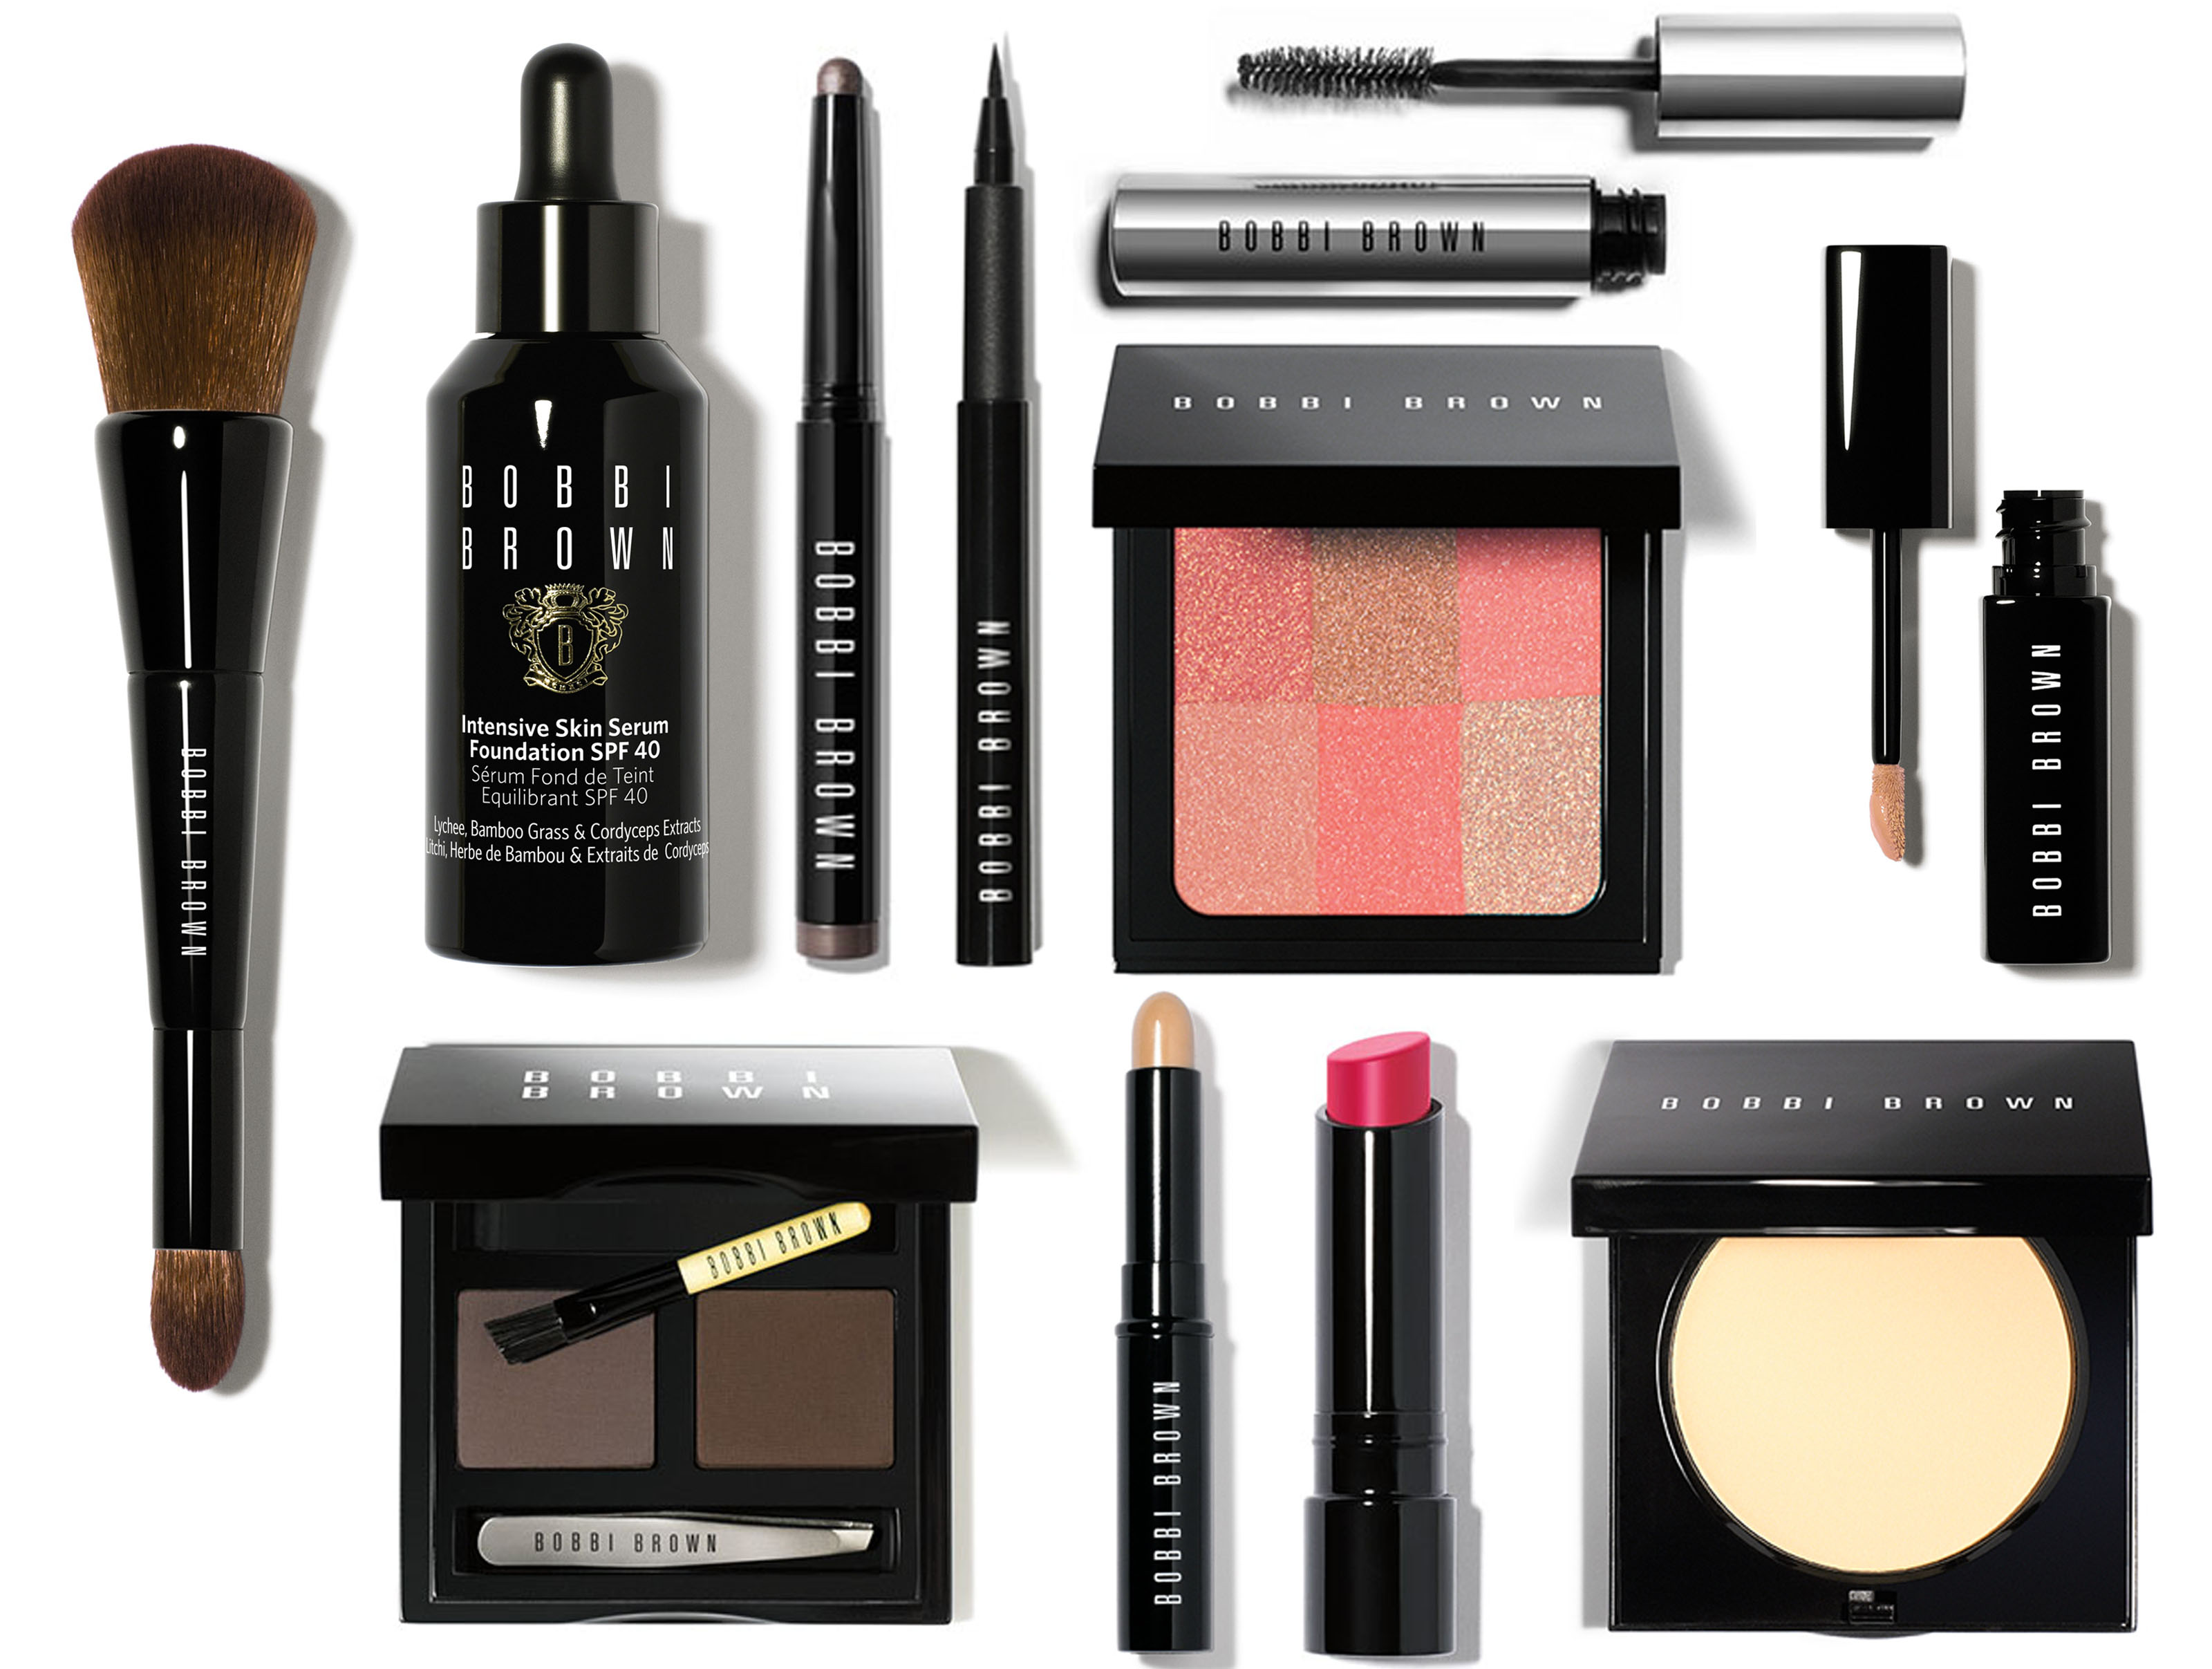 A Day Of Pampering at Bobbi Brown || Diva In Me